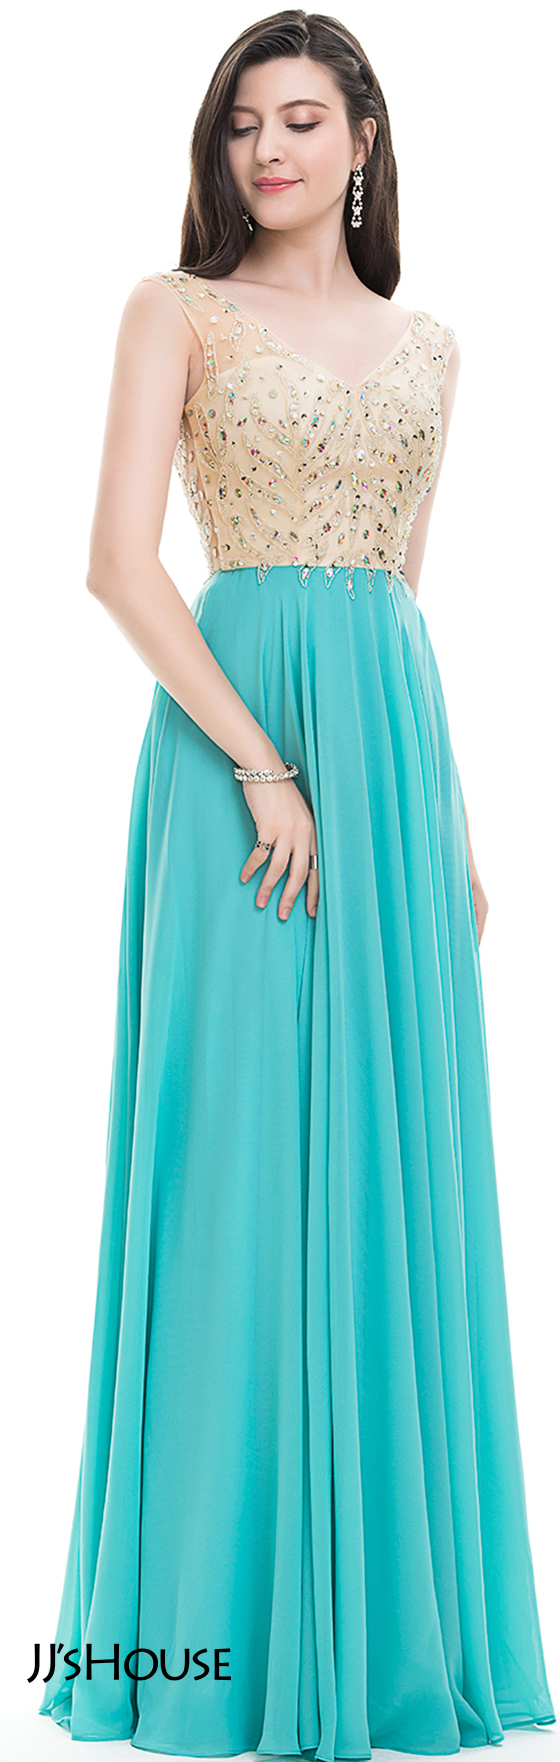 JJsHouse #Prom | Modern gowns | Pinterest | Prom, Sequins and Princess